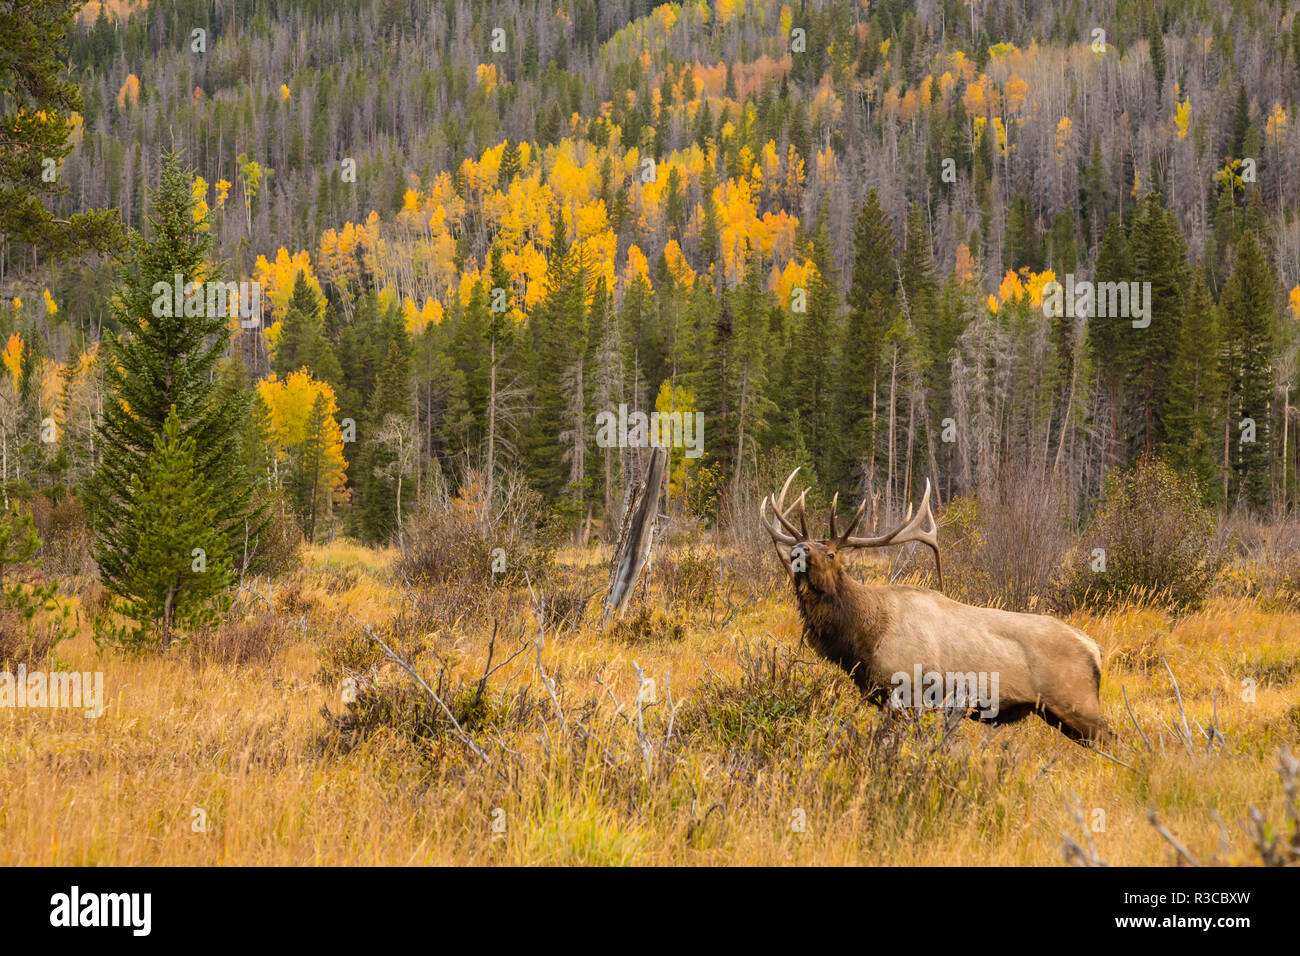 USA, Colorado, Rocky Mountain National Park. Bull elk in field. - Stock Image